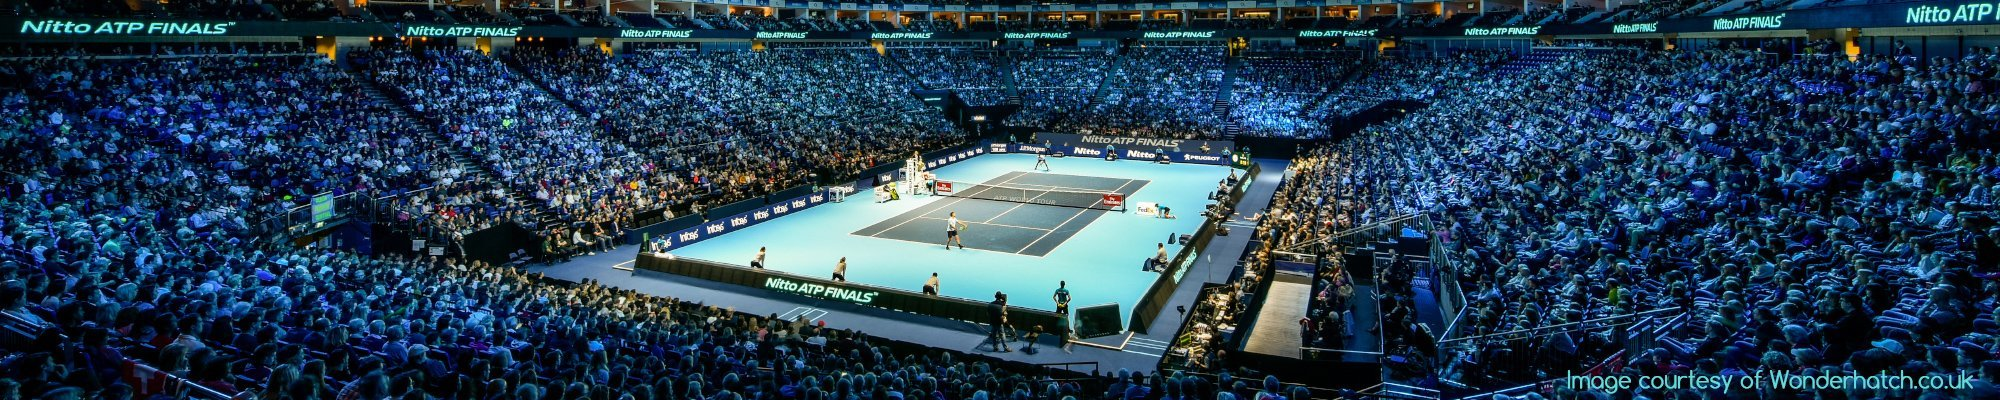 2018 Nitto ATP Finals NOV 15th